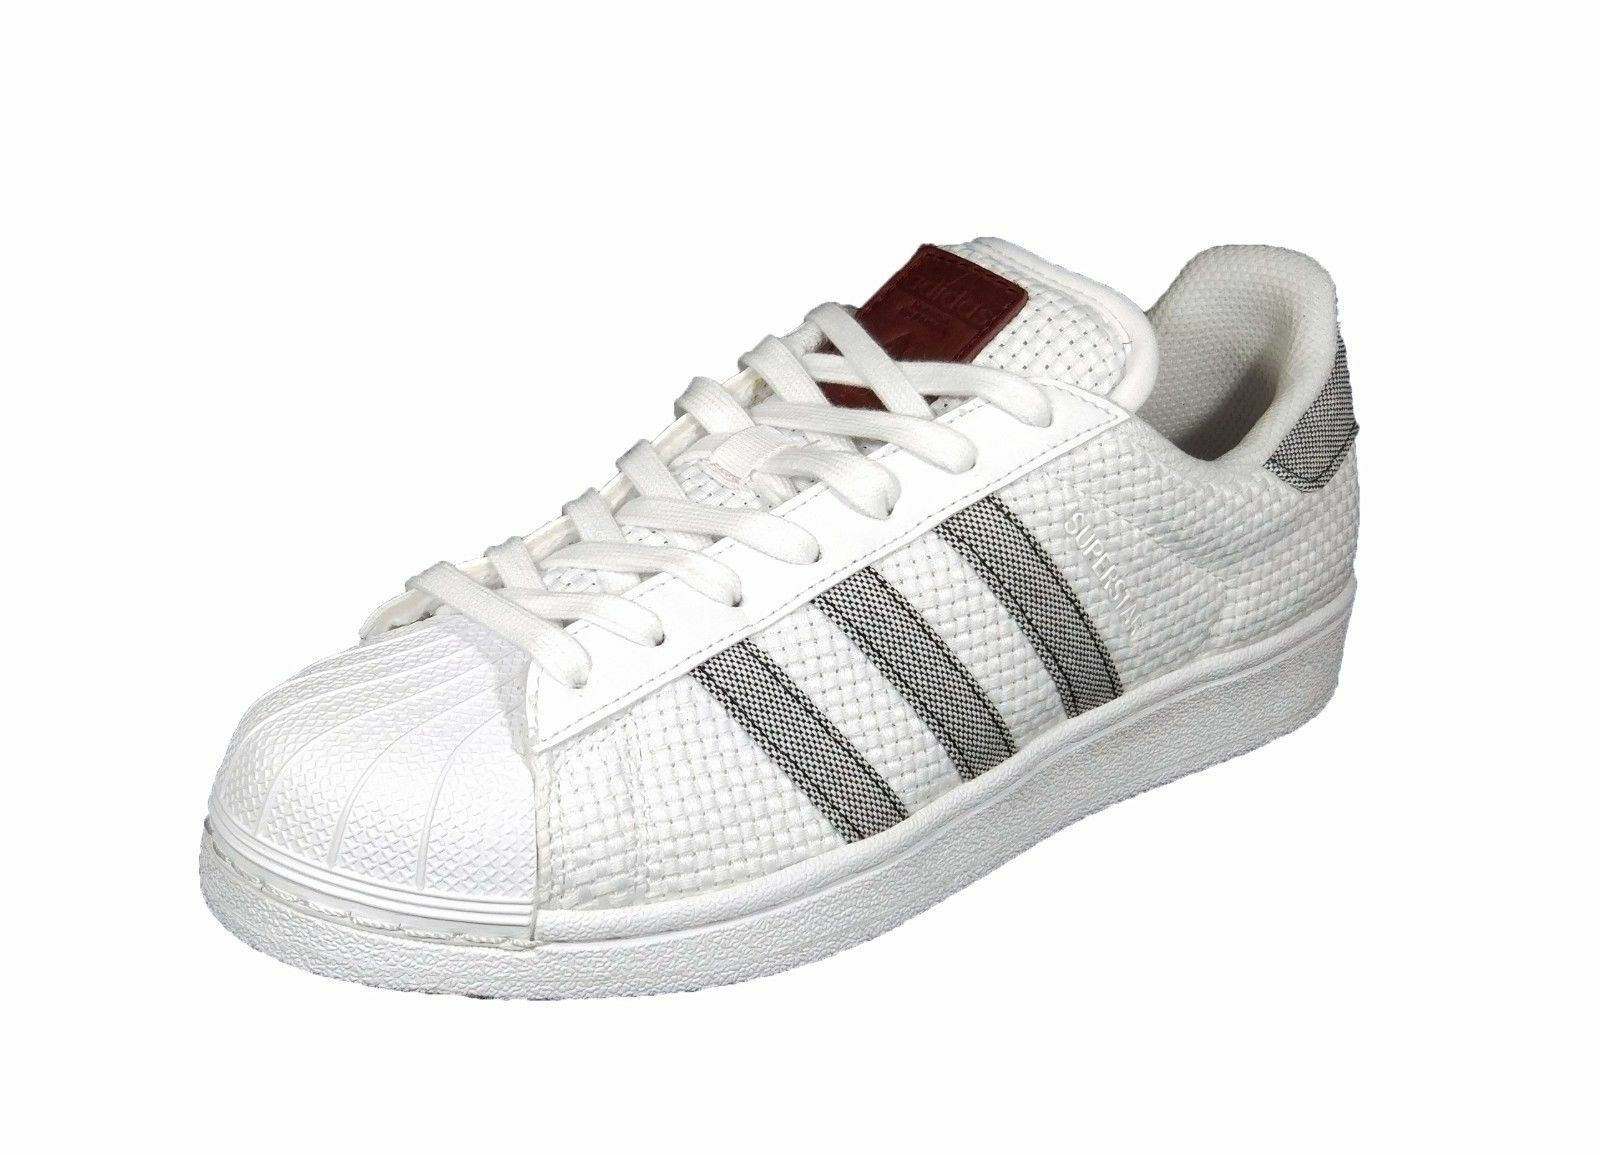 Adidas Zapatillas Originals Superstar Riviera Zapatillas Hombre Zapatillas Adidas -BB6385-Blanco 1e5025